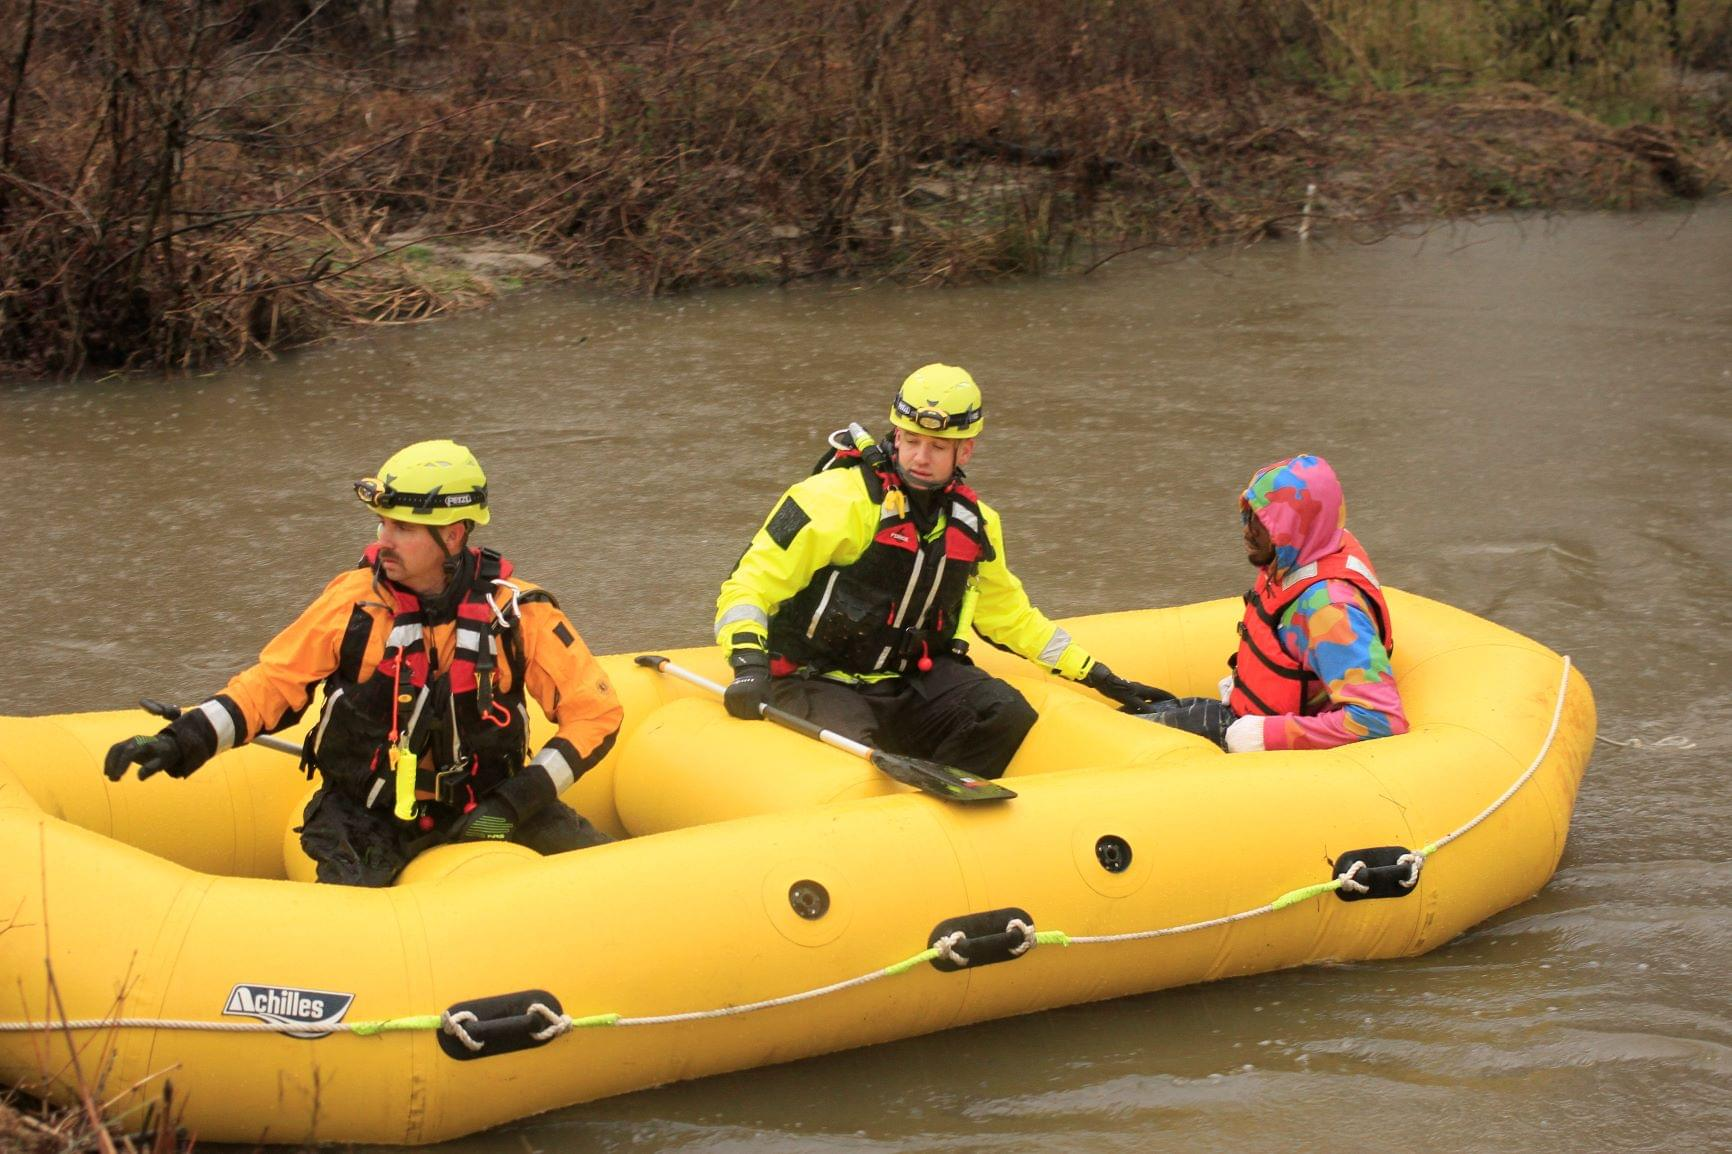 Driver Rescued After Vehicle Ends Up In Creek (PHOTO GALLERY)